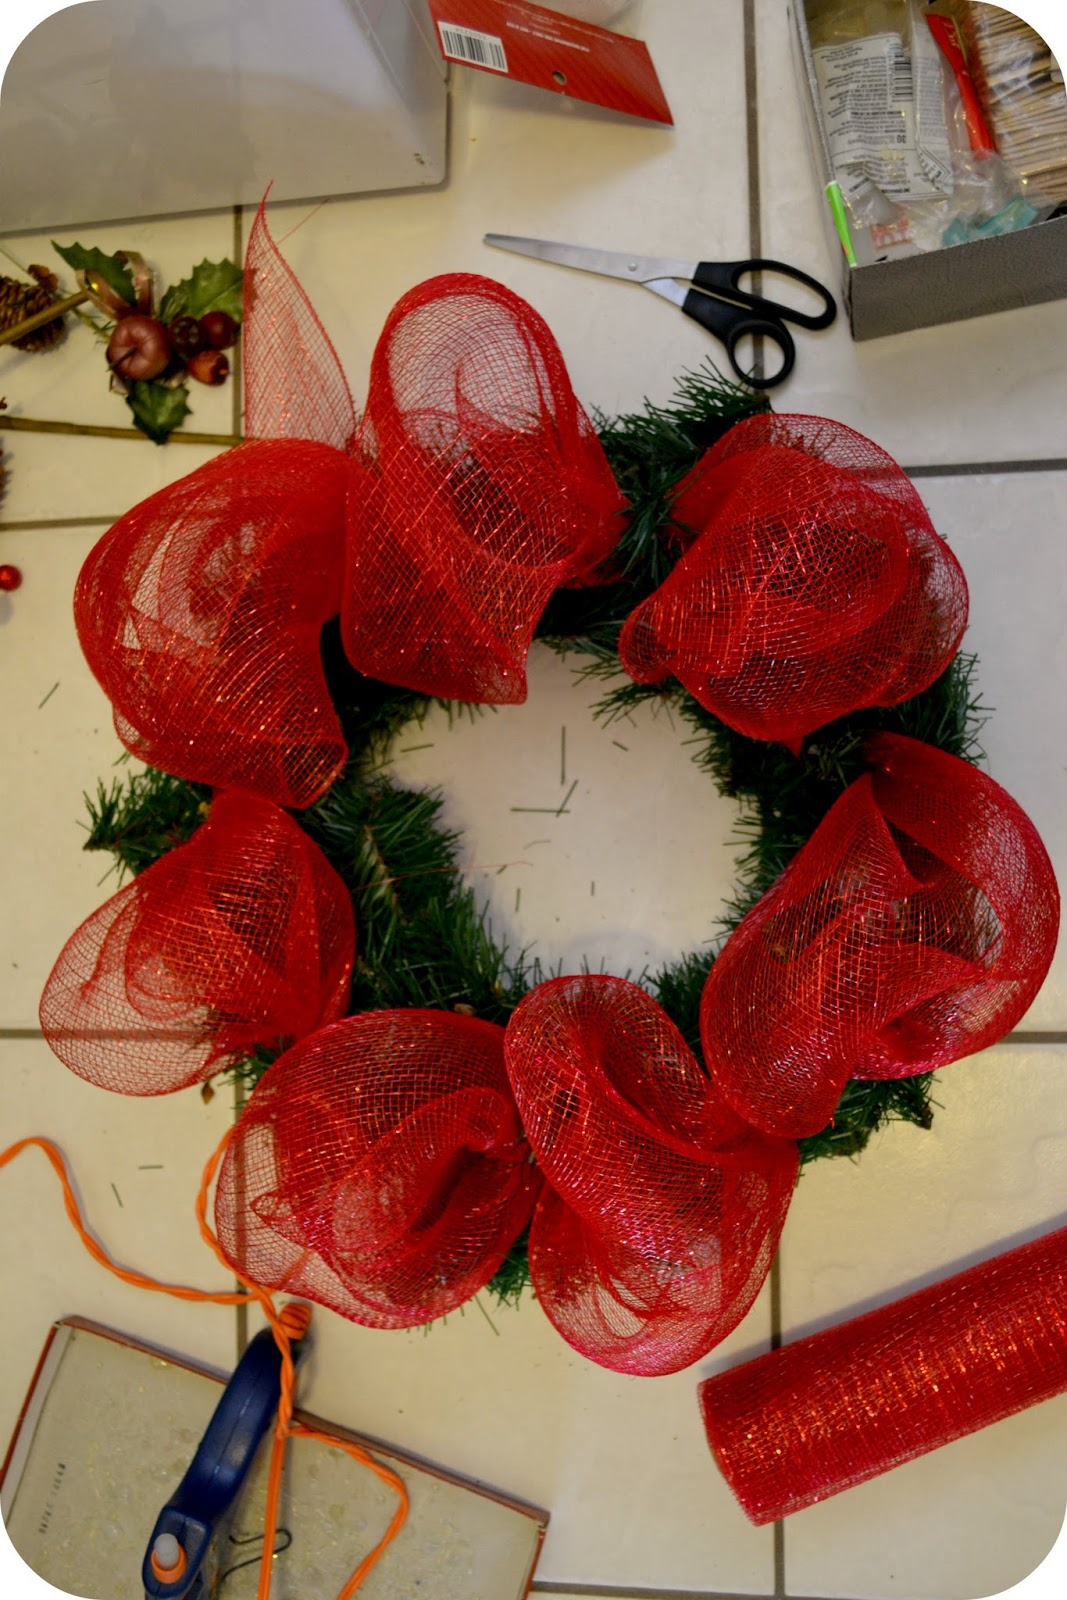 The sparacino chronicles christmas deco mesh wreath tutorial i fired up my hot glue gun and glued the glittery ornaments on the wreath i also had some red glittery sticks with balls on them and some decorative leaves baditri Images